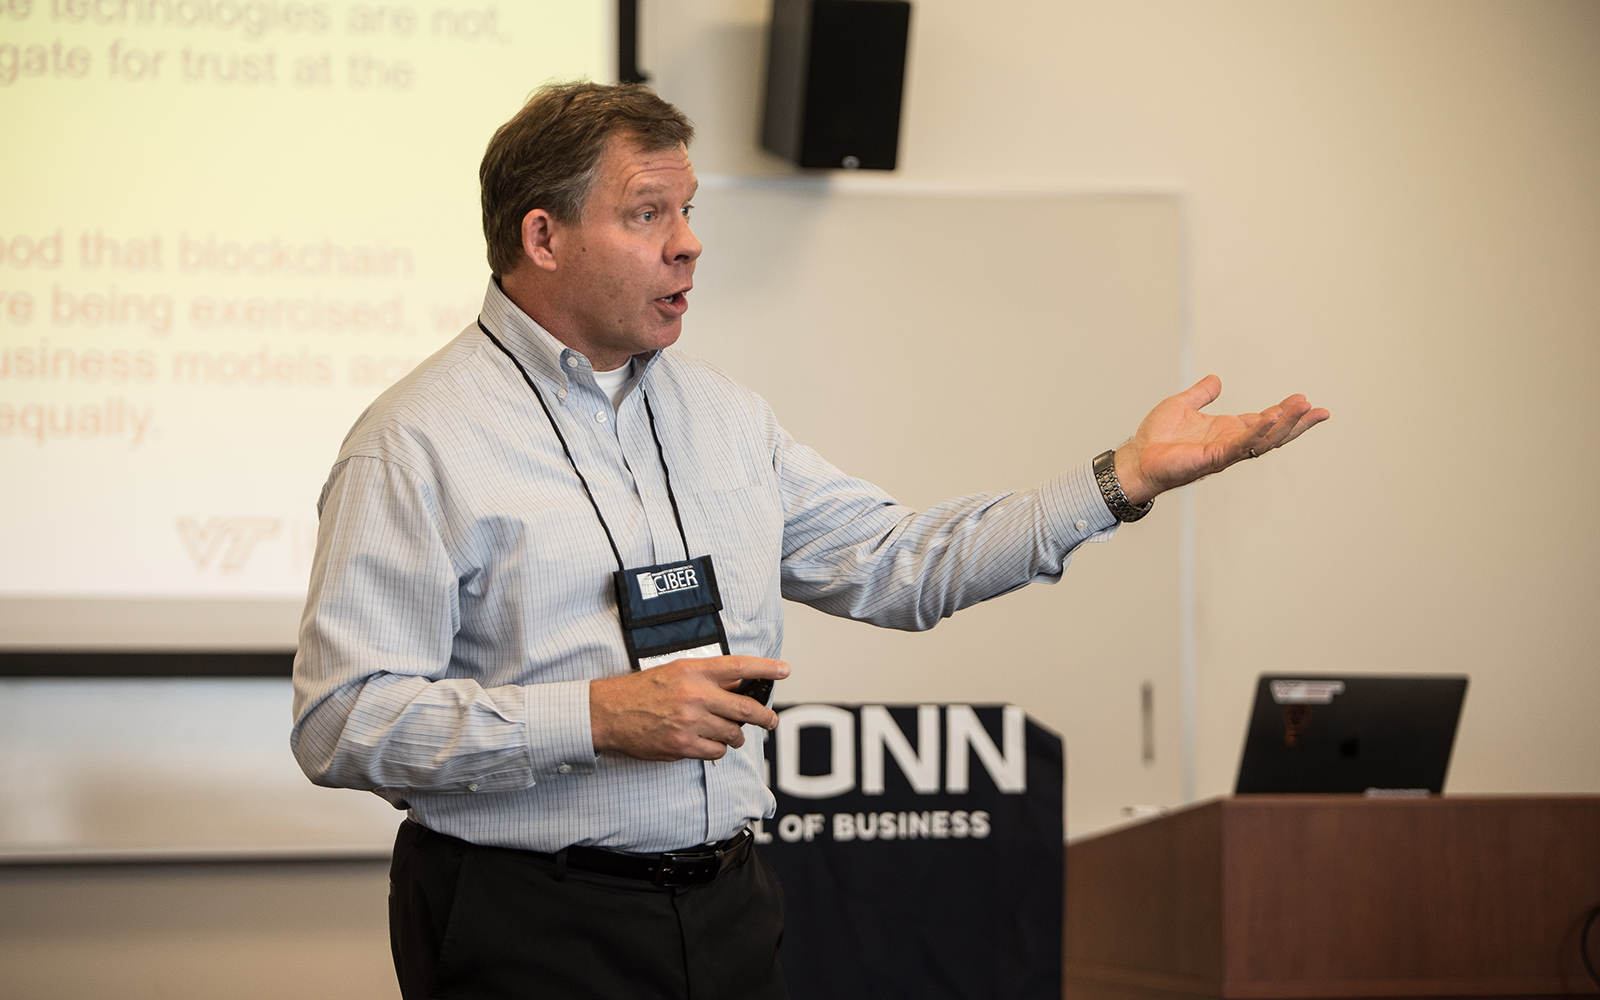 Mark Mondry, a professor at Virginia Tech, discusses his research on Blockchain and trust concerns in transactional organizations. (Nathan Oldham/UConn School of Business)